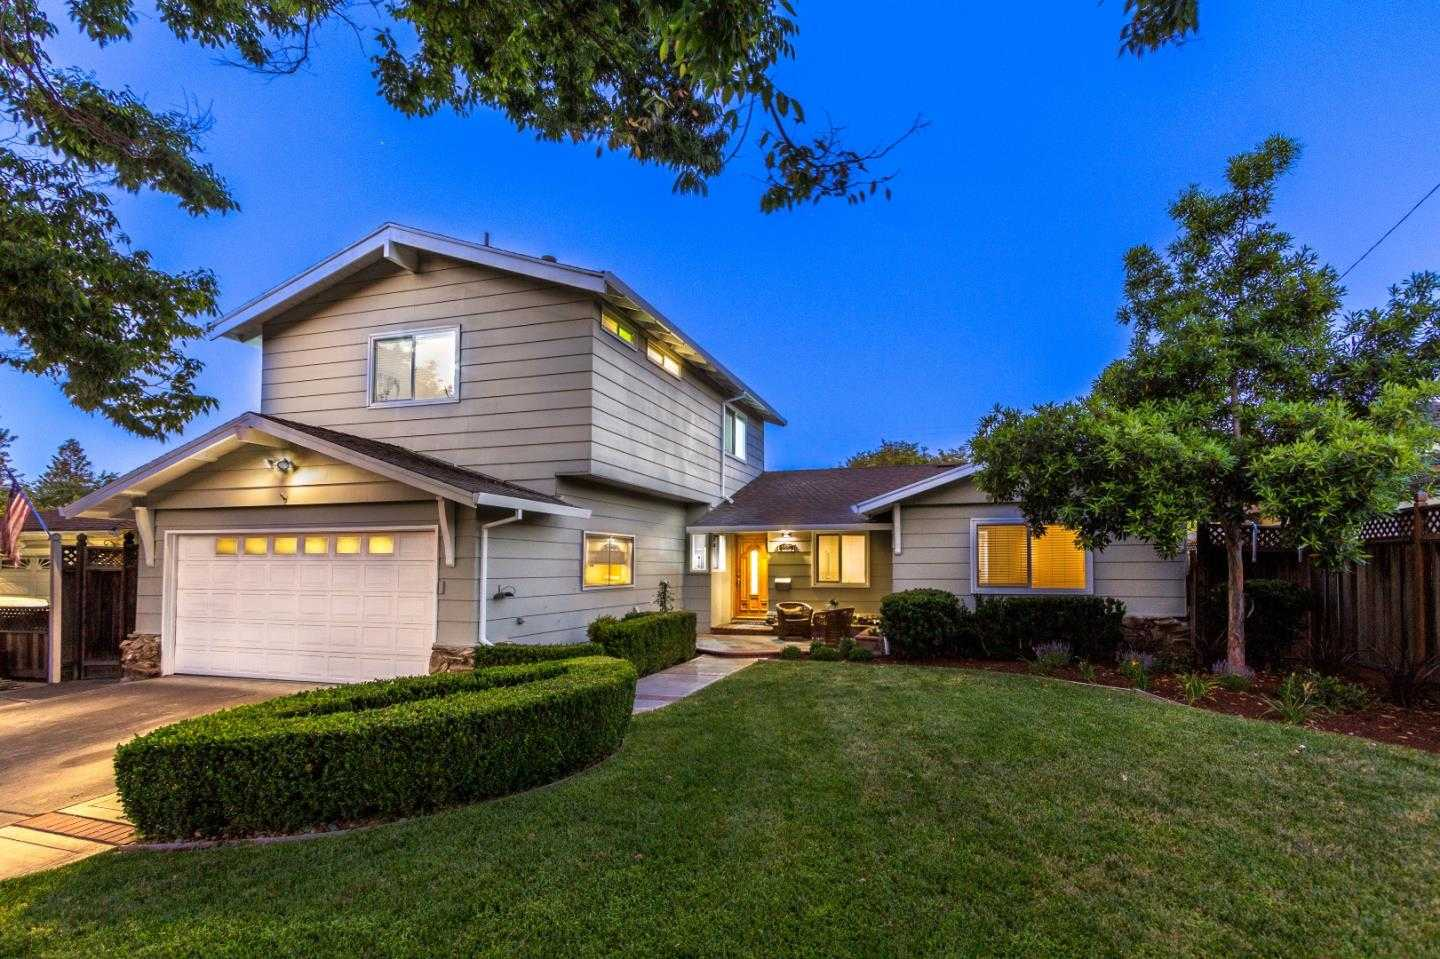 $2,500,000 - 5Br/3Ba -  for Sale in San Jose